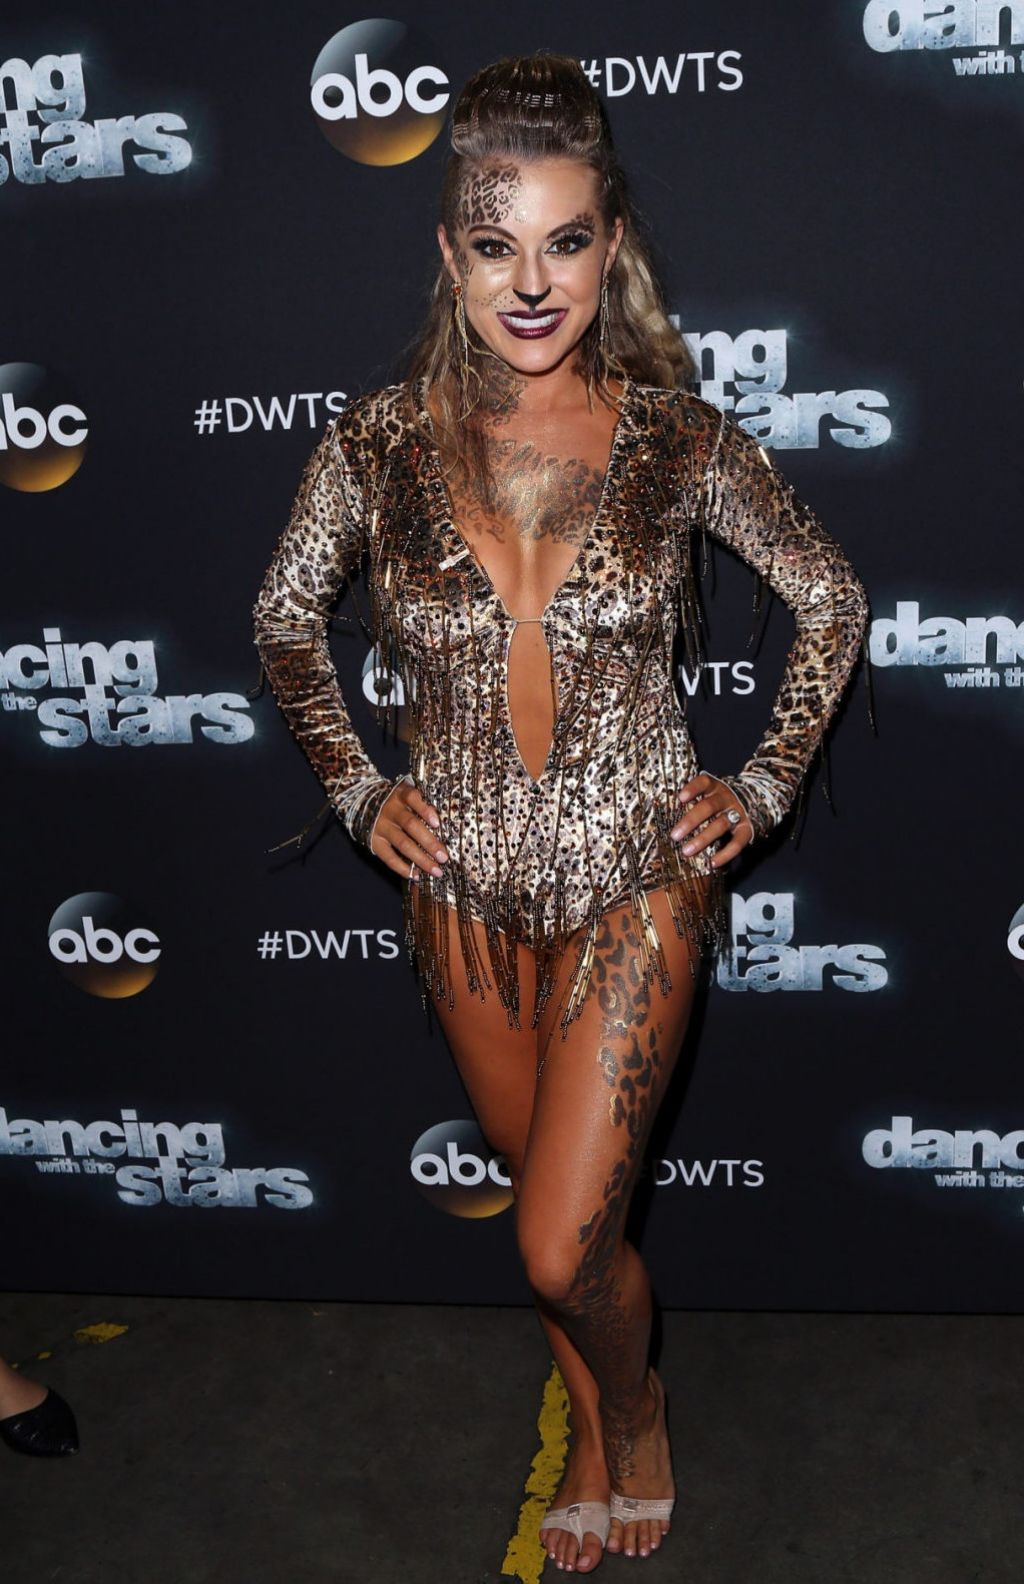 Alexa Penavega At The Dancing With The Stars Photo Op At